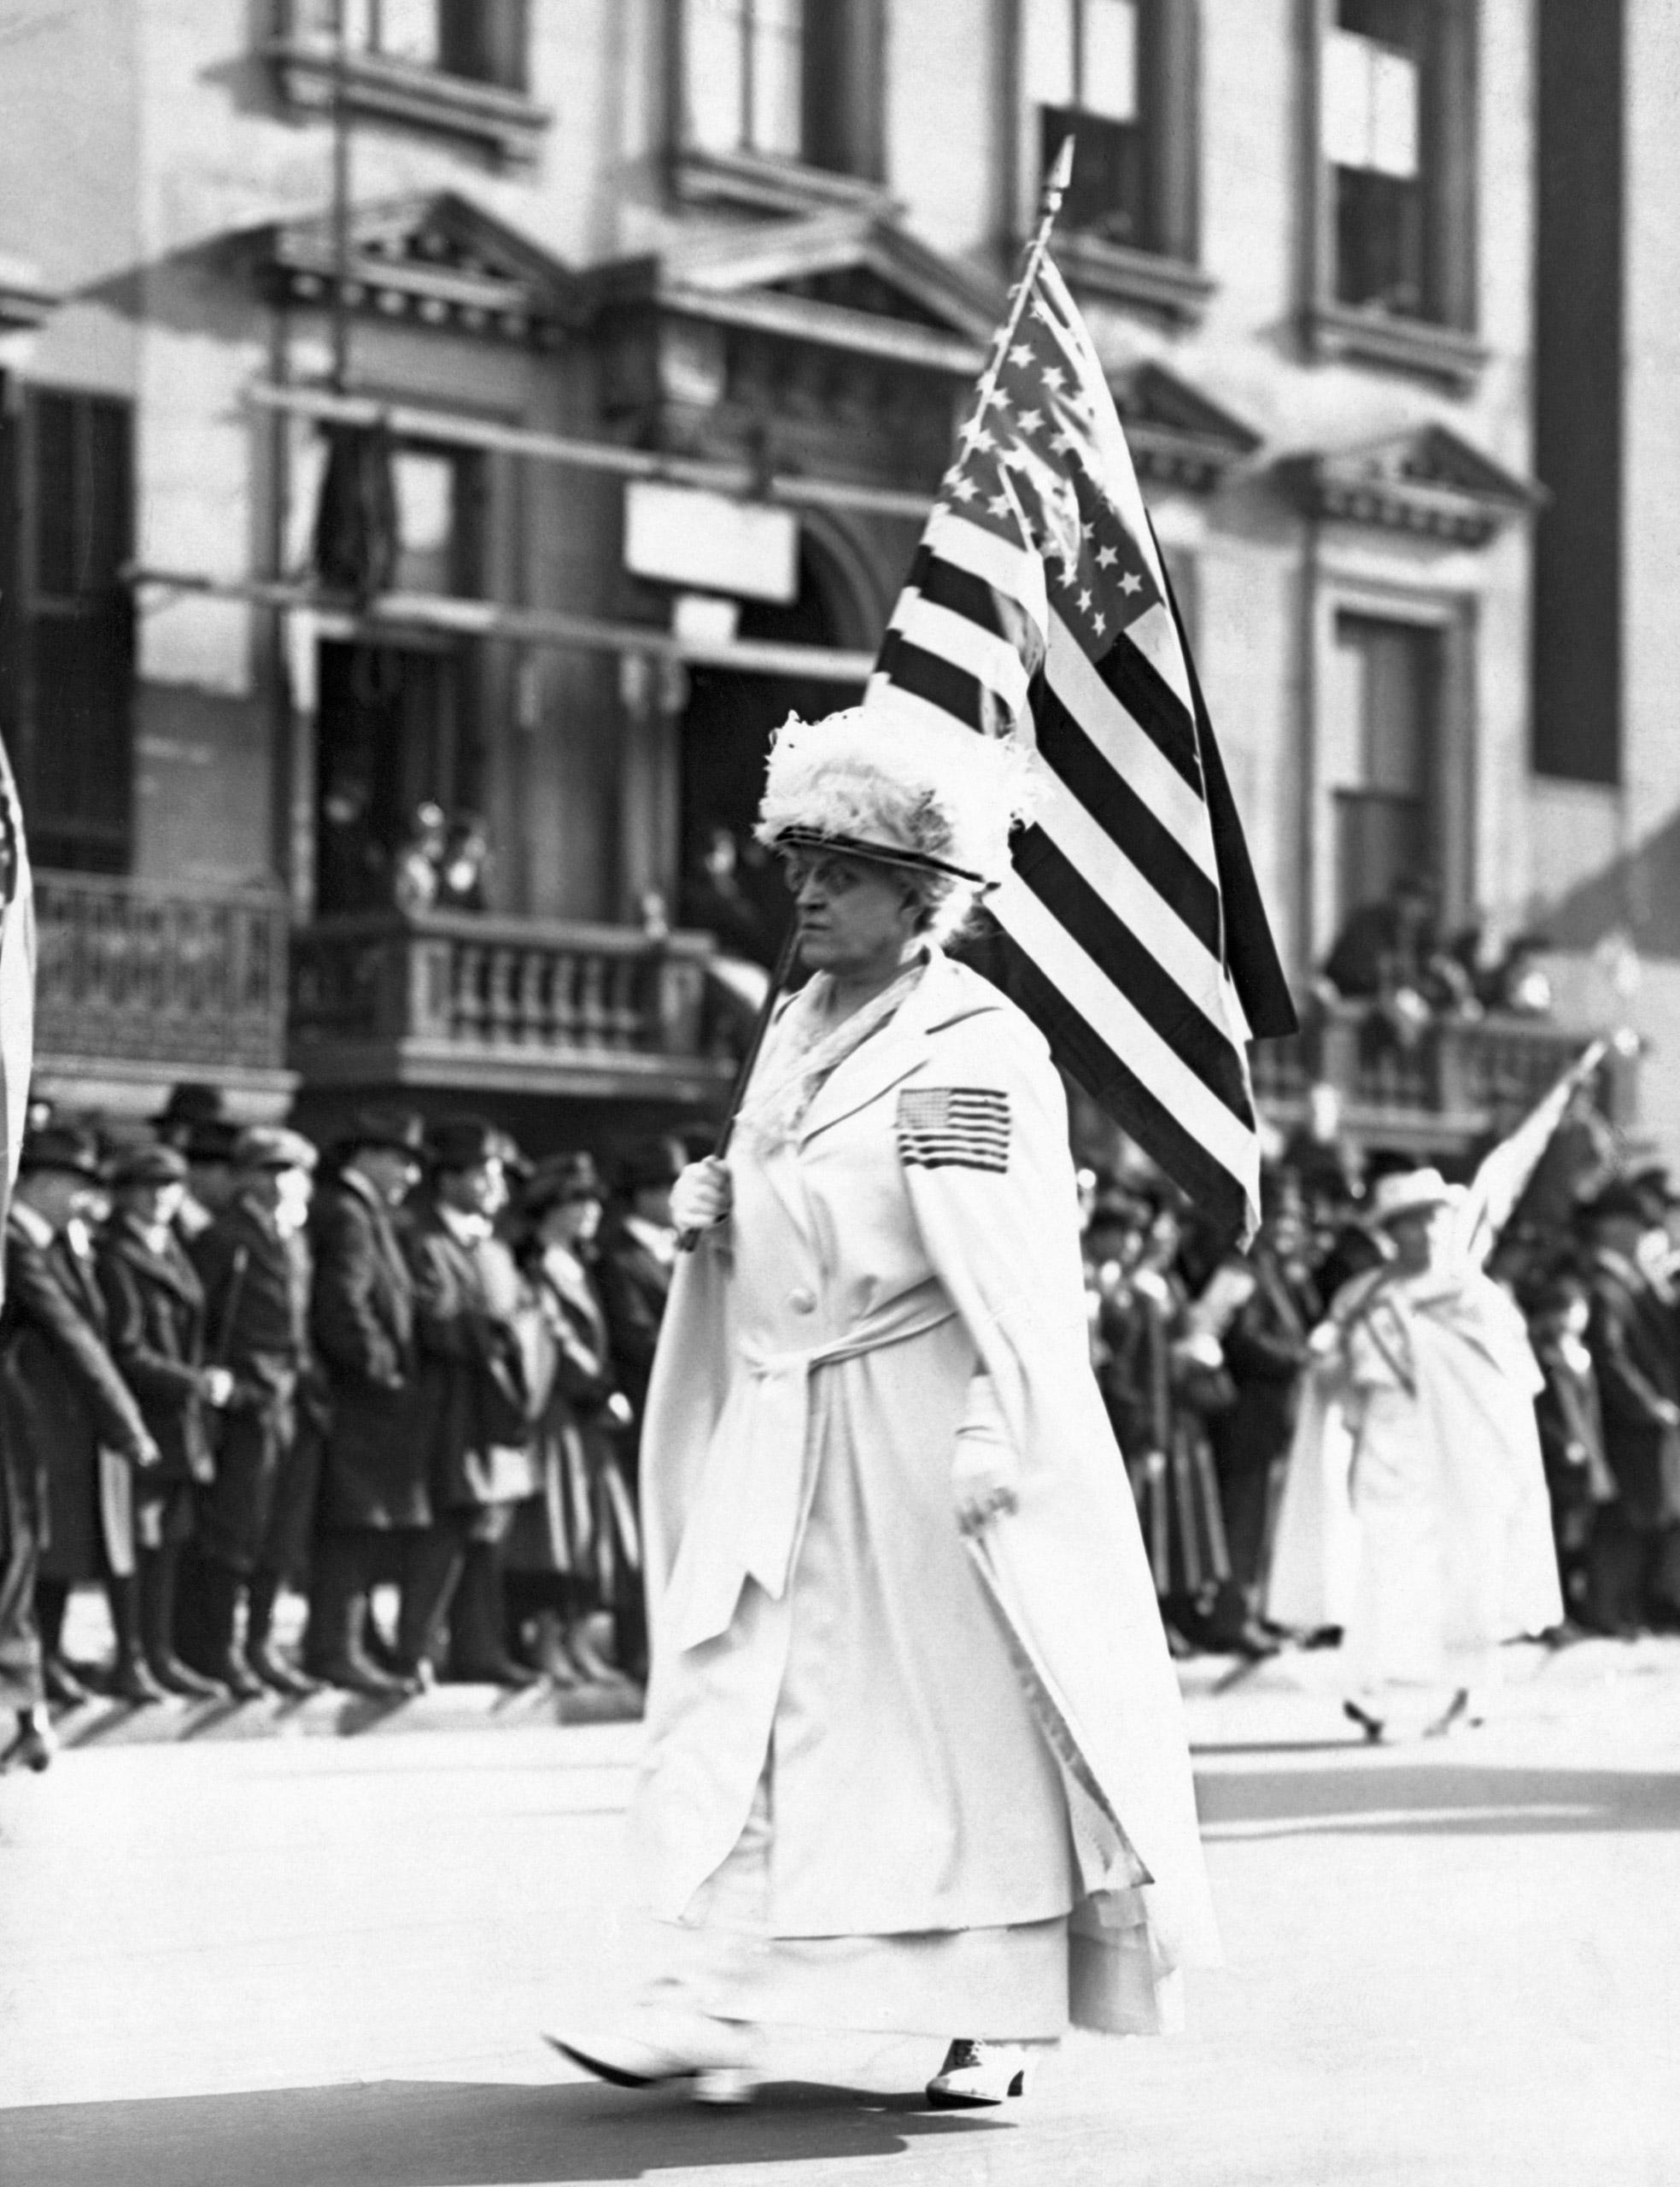 Carrie Chapman Catt (1849-1947), taking part in a New York parade, in an undated photo.Catt was a leader of the National American Woman Suffrage Association and later founded of the League of Women Voters.